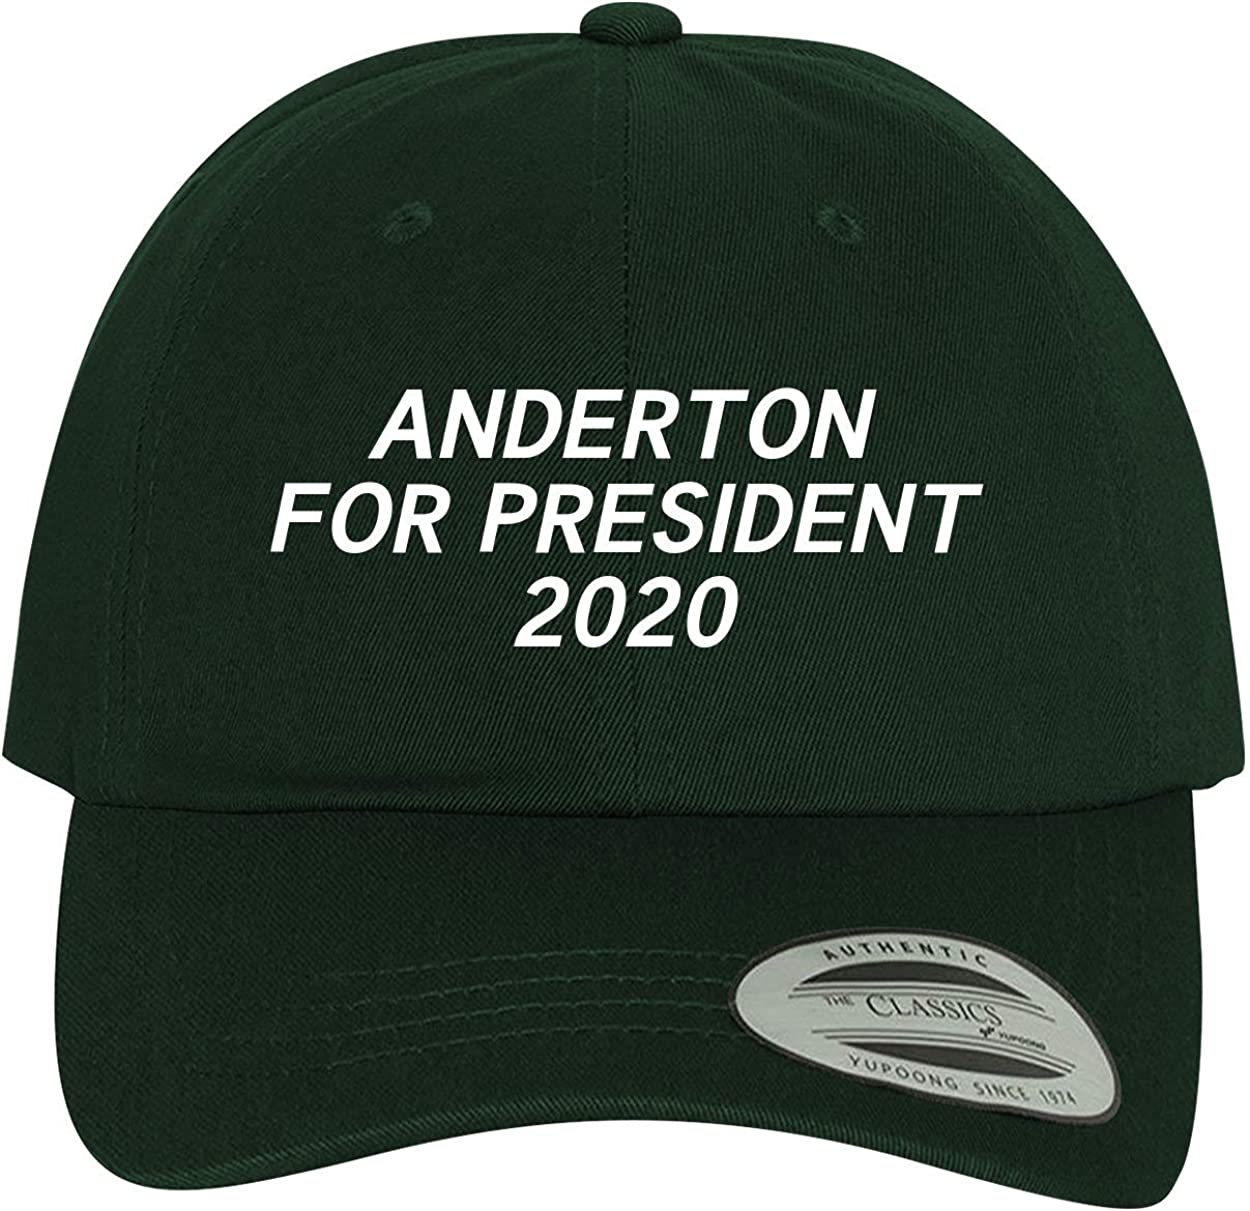 Bh Cool Designs Anderton für President 2020 - Comfortable Papa Hut Baseball Cap